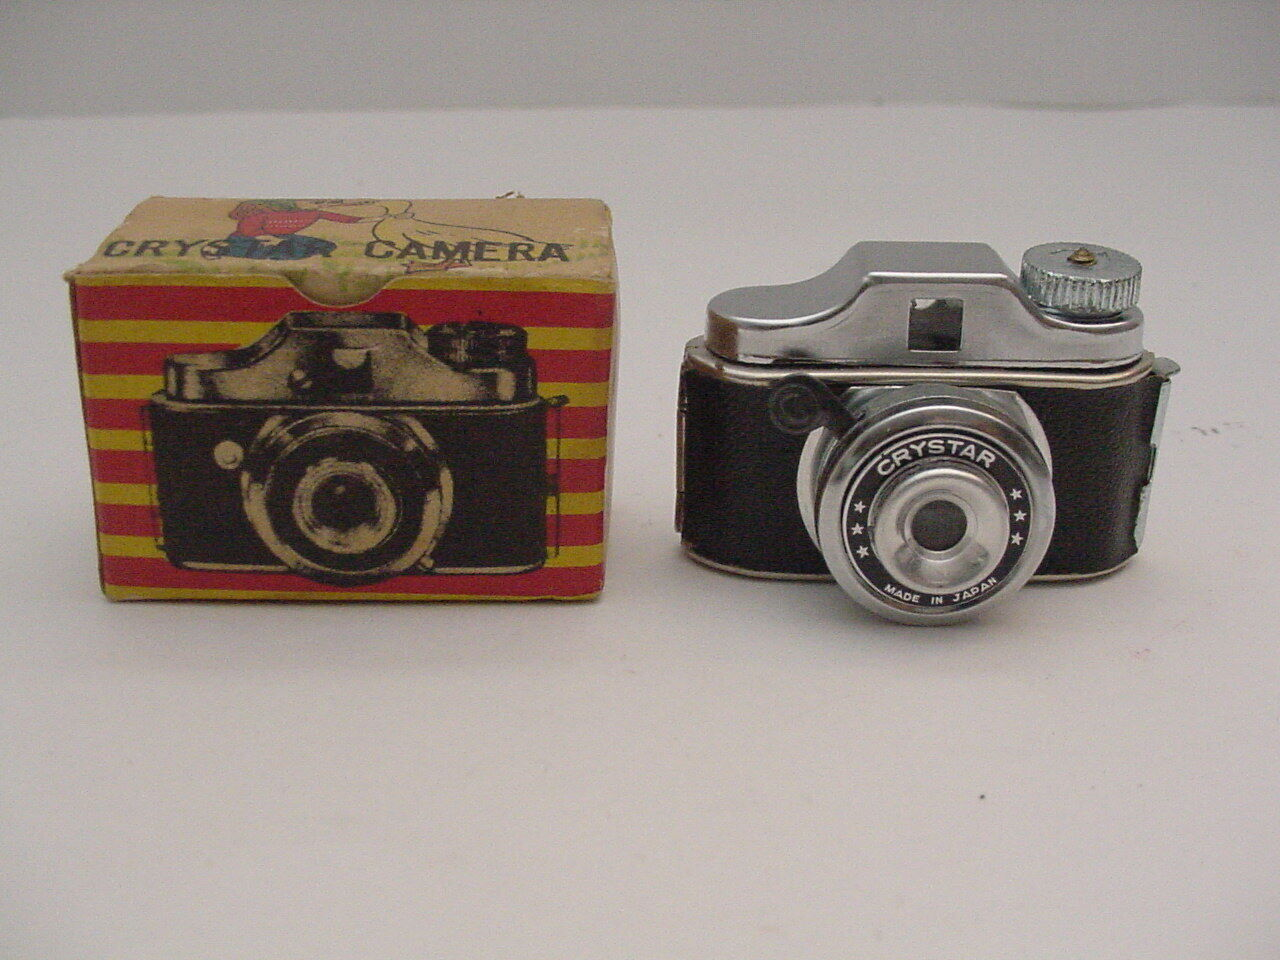 Vintage Crystar Miniature Camera And Box Made In Japan Untested - $18.00